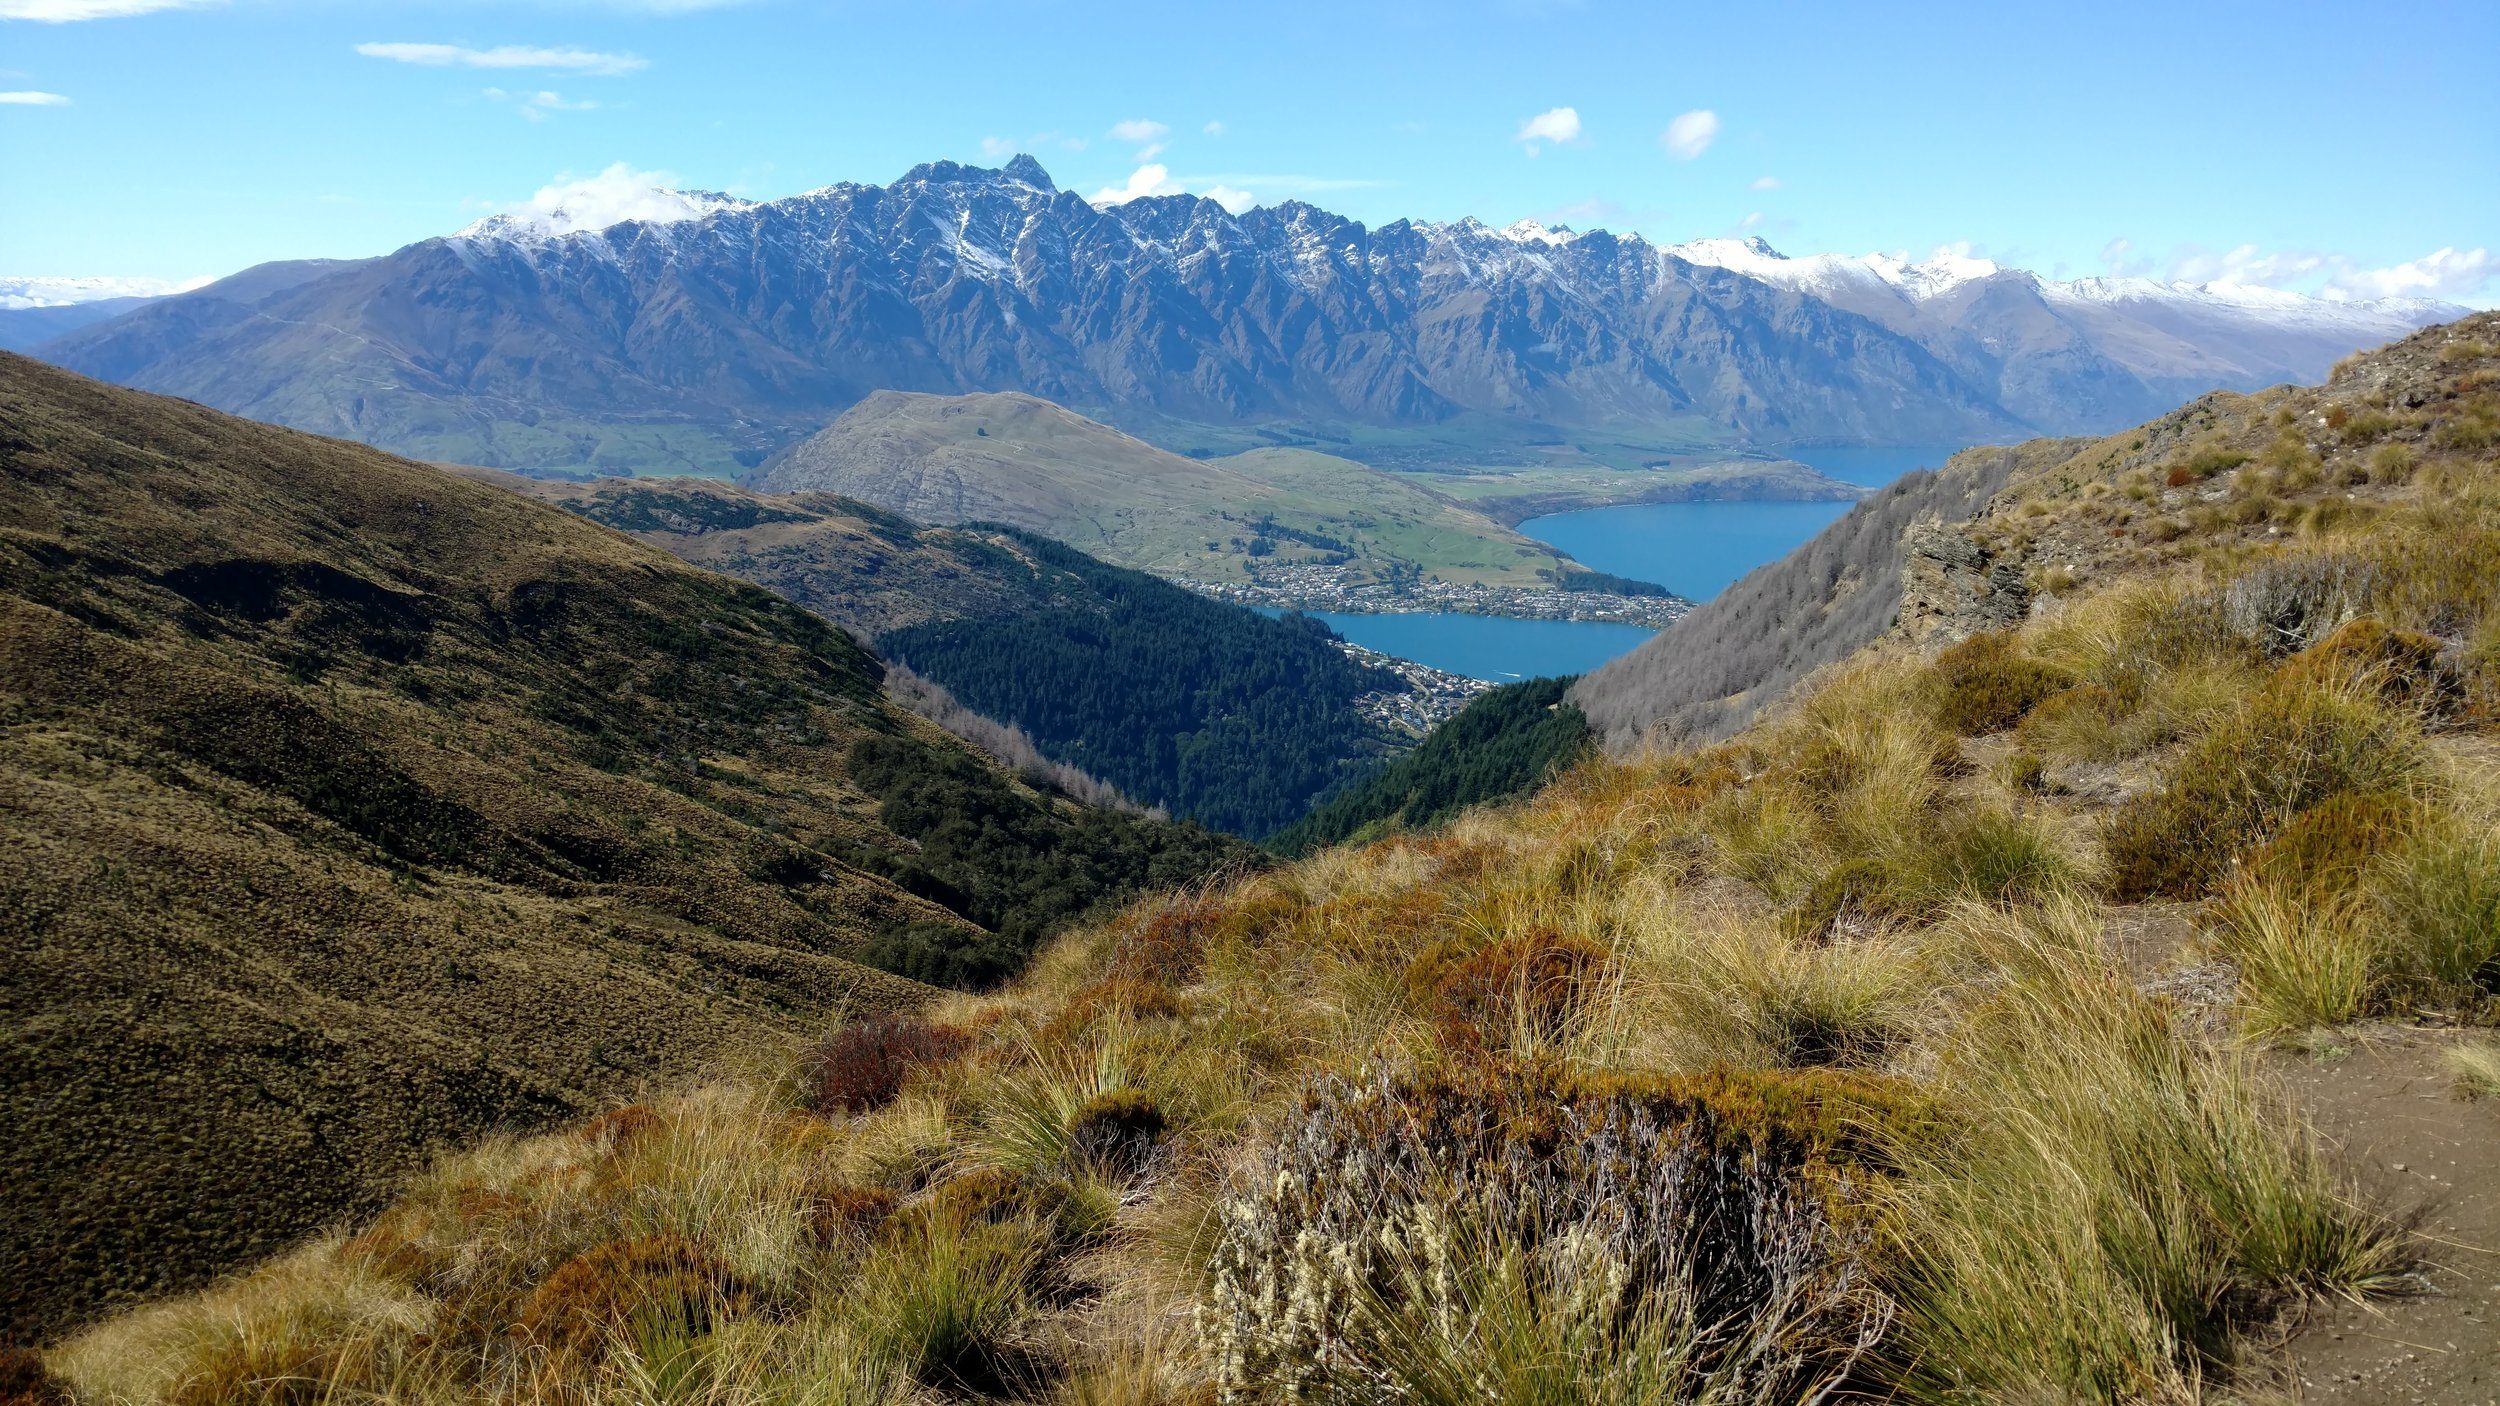 Ridgeline trail view of Queenstown